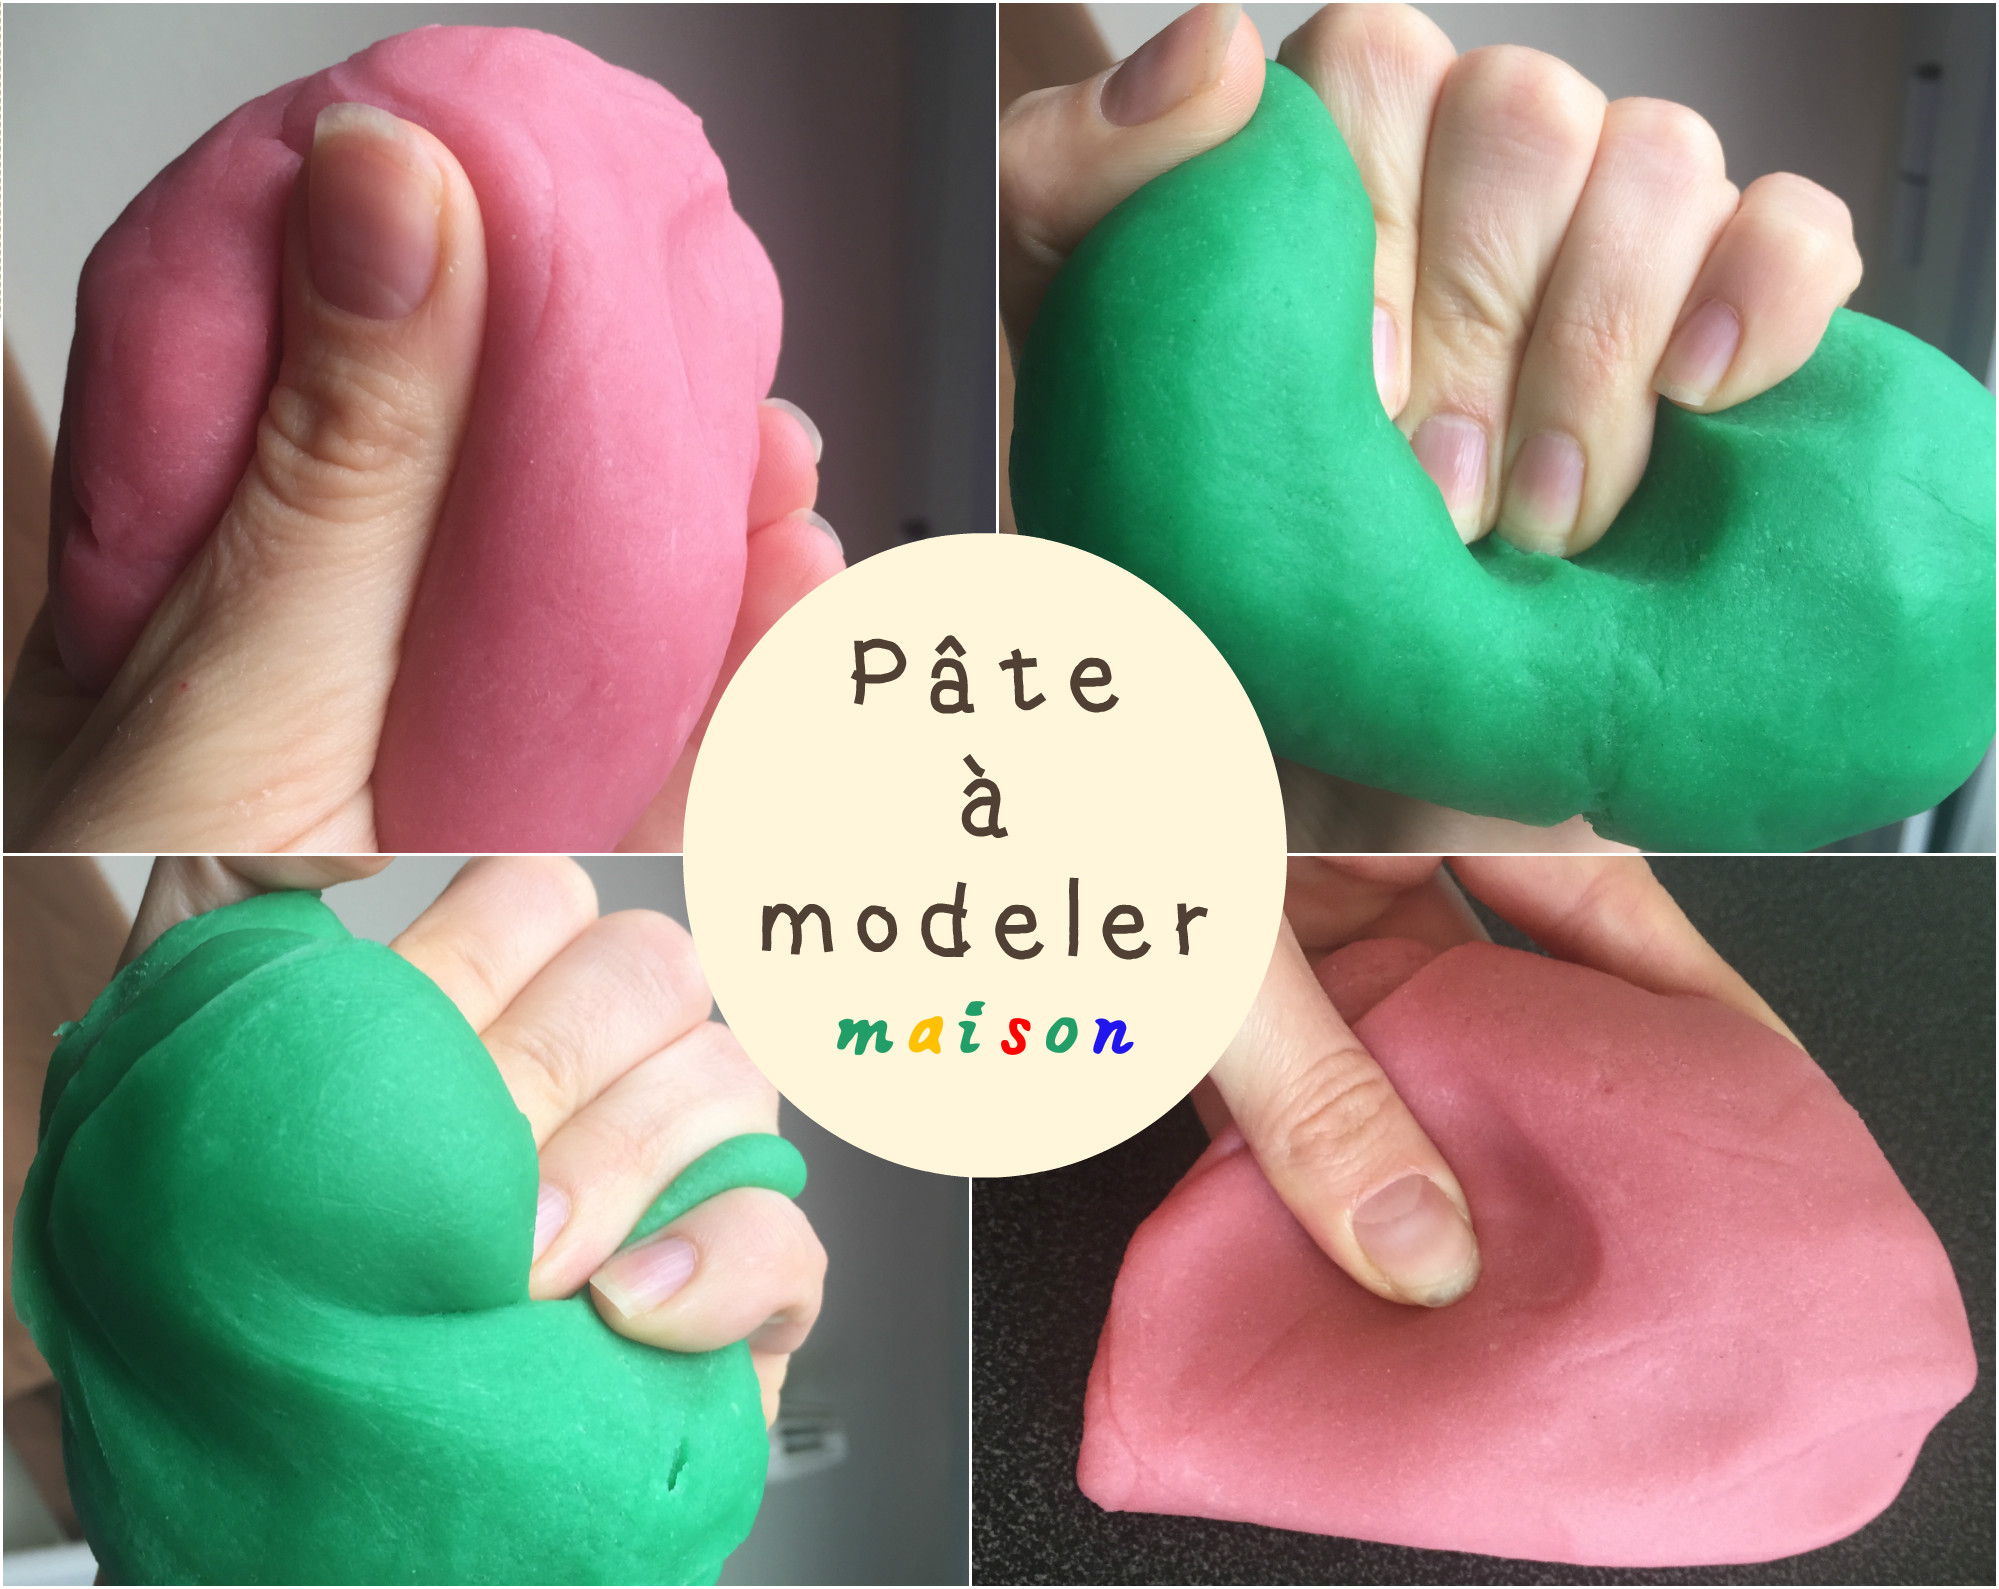 Fabriquer sa p te modeler maison comme le play doh du magasin - Creation a faire a la maison ...